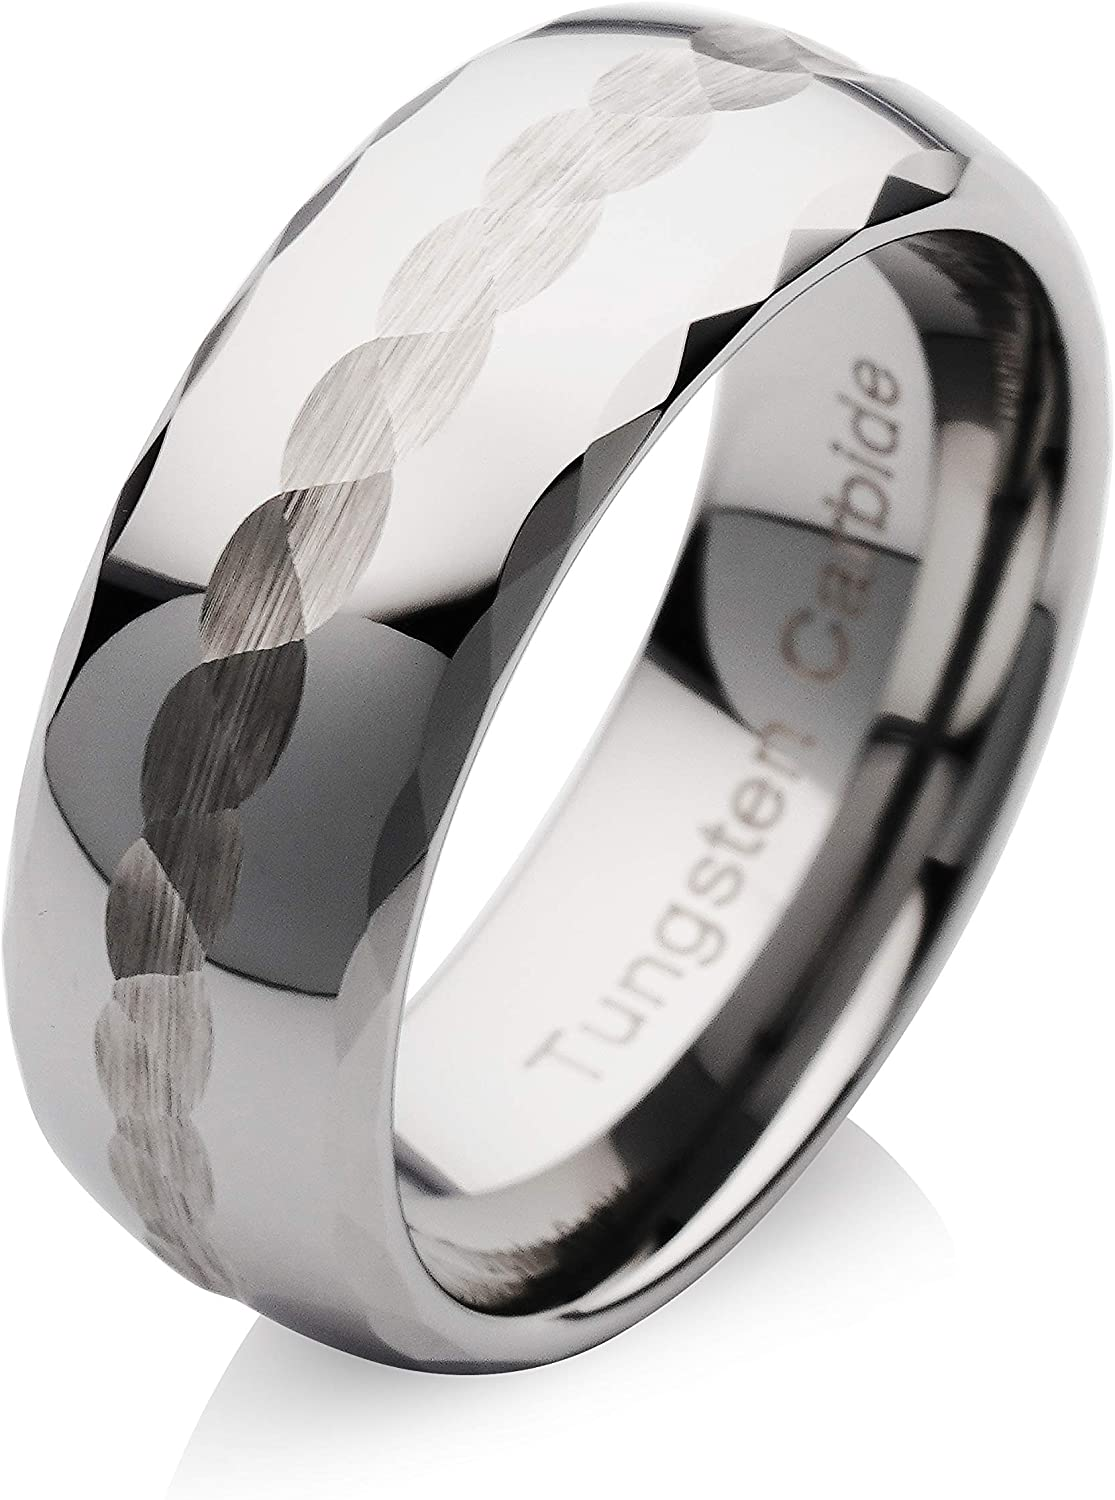 100S JEWELRY Tungsten Rings for Men Women Wedding Band Silver Hammered Finish Sizes 6-16